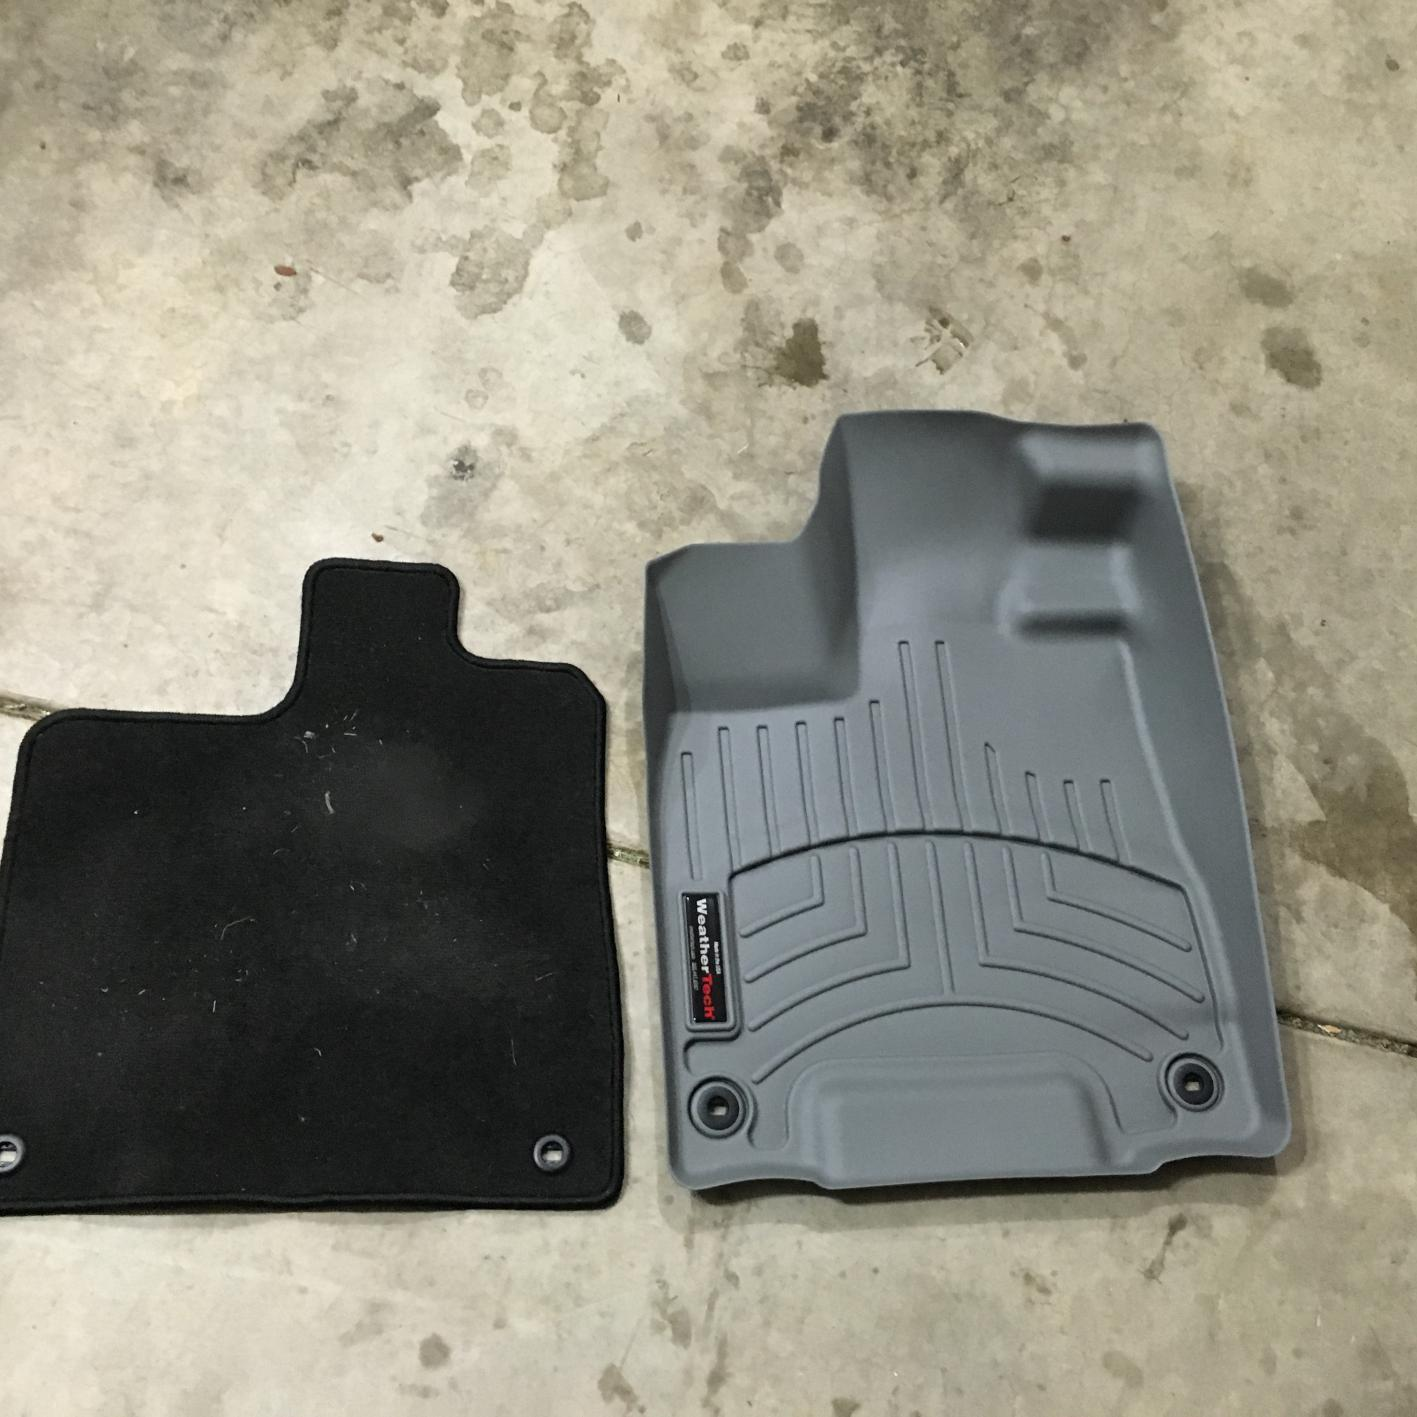 price mat p inflow global weathertech res floor inflowcomponent content best technicalissues reman s ebay mats